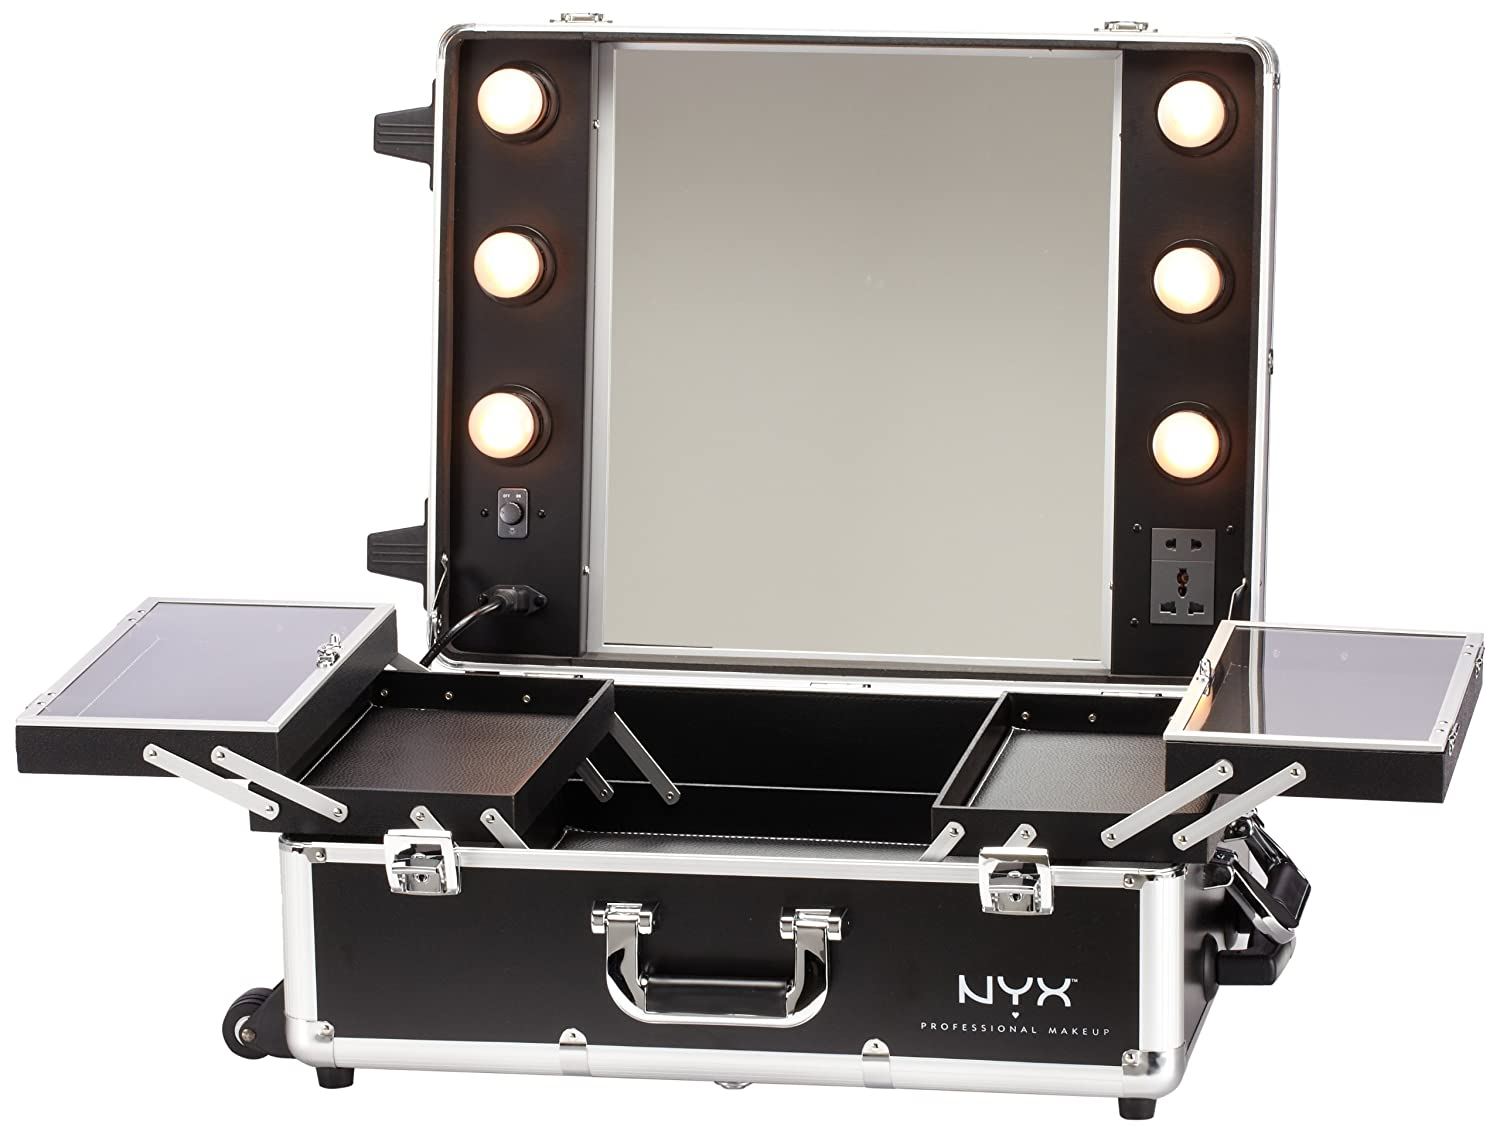 makeup mirror with lights india images. Black Bedroom Furniture Sets. Home Design Ideas